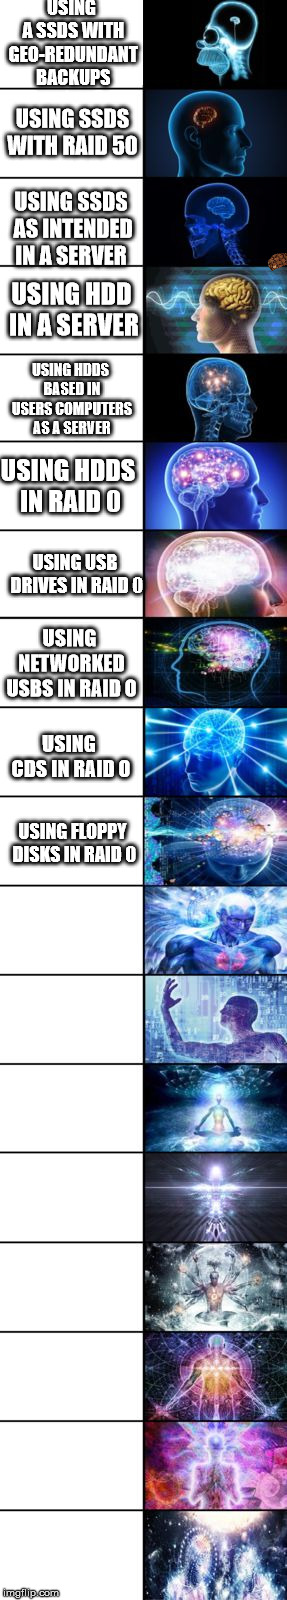 Expanding Brain longest version | USING A SSDS WITH GEO-REDUNDANT BACKUPS USING SSDS WITH RAID 50 USING SSDS AS INTENDED IN A SERVER USING HDD IN A SERVER USING HDDS BASED IN | image tagged in expanding brain longest version,scumbag | made w/ Imgflip meme maker